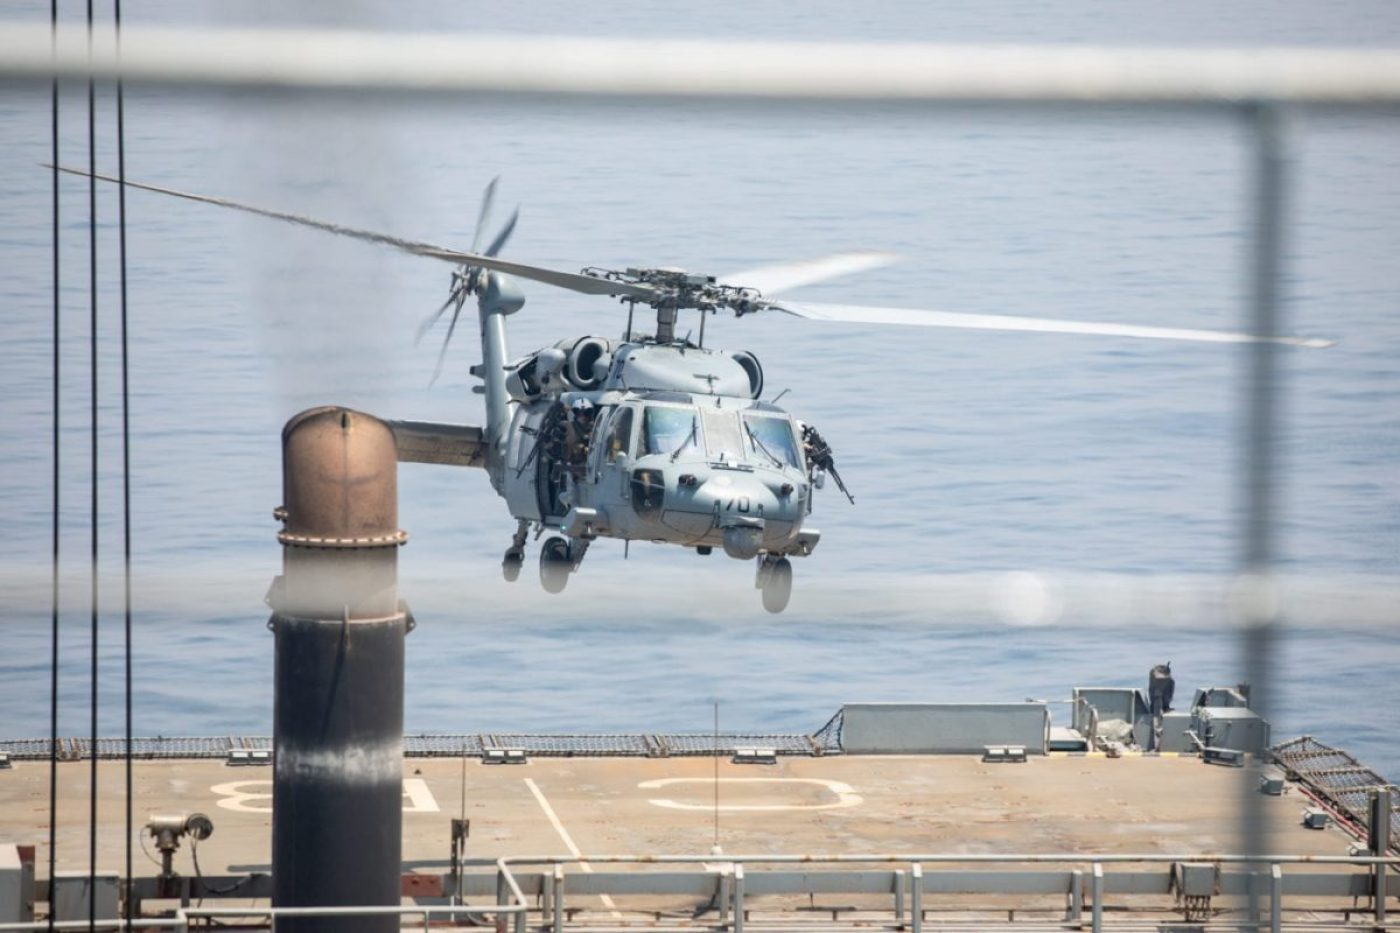 """A MH-60S Sea Hawk helicopter, attached to the """"Chargers"""" of Helicopter Sea Combat Squadron (HSC) 26, lands on the flight deck of Royal Fleet Auxiliary landing ship dock RFA Cardigan Bay (L 3009) during flight operations as part of exercise Artemis Trident 21 in the Arabian Gulf, April 26. (U.S. Army photo by Sgt. Wheeler Brunschmid)"""